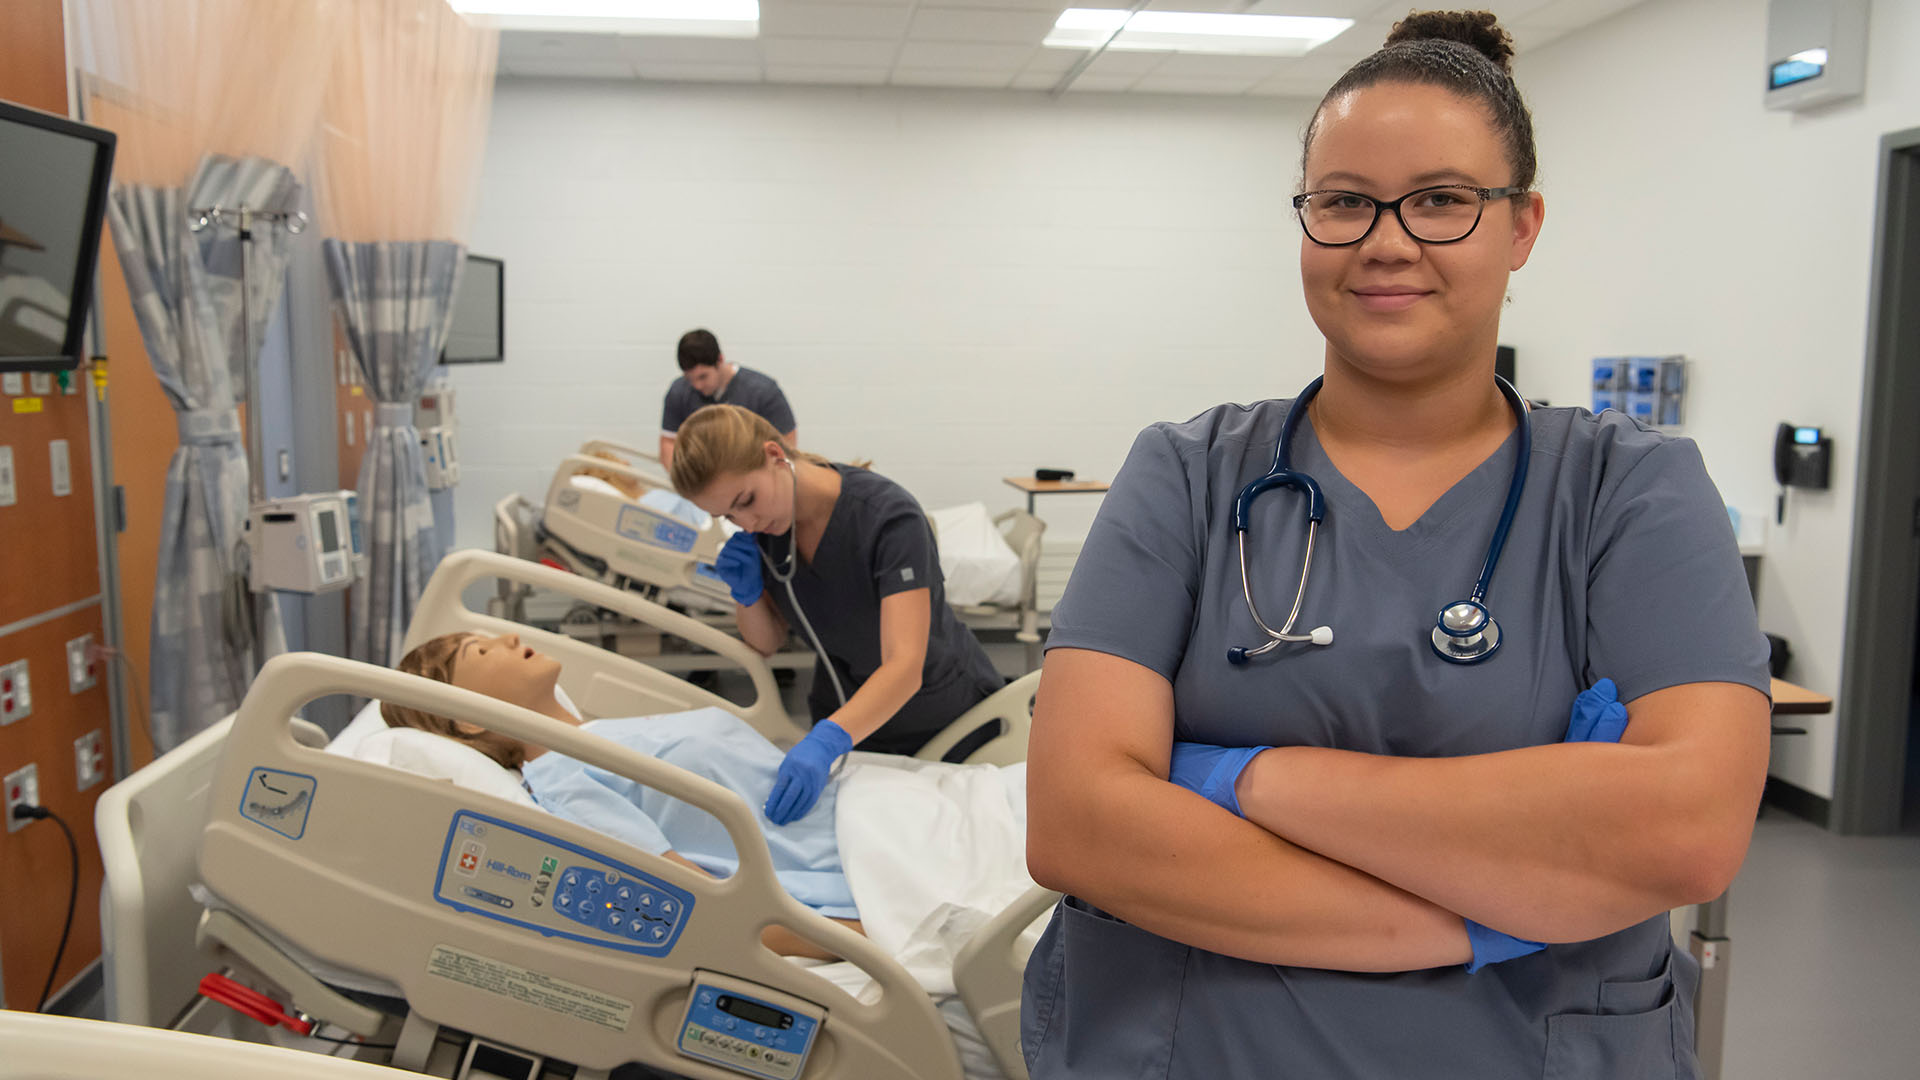 Respiratory therapy student poses in lab in front of manikins and other students